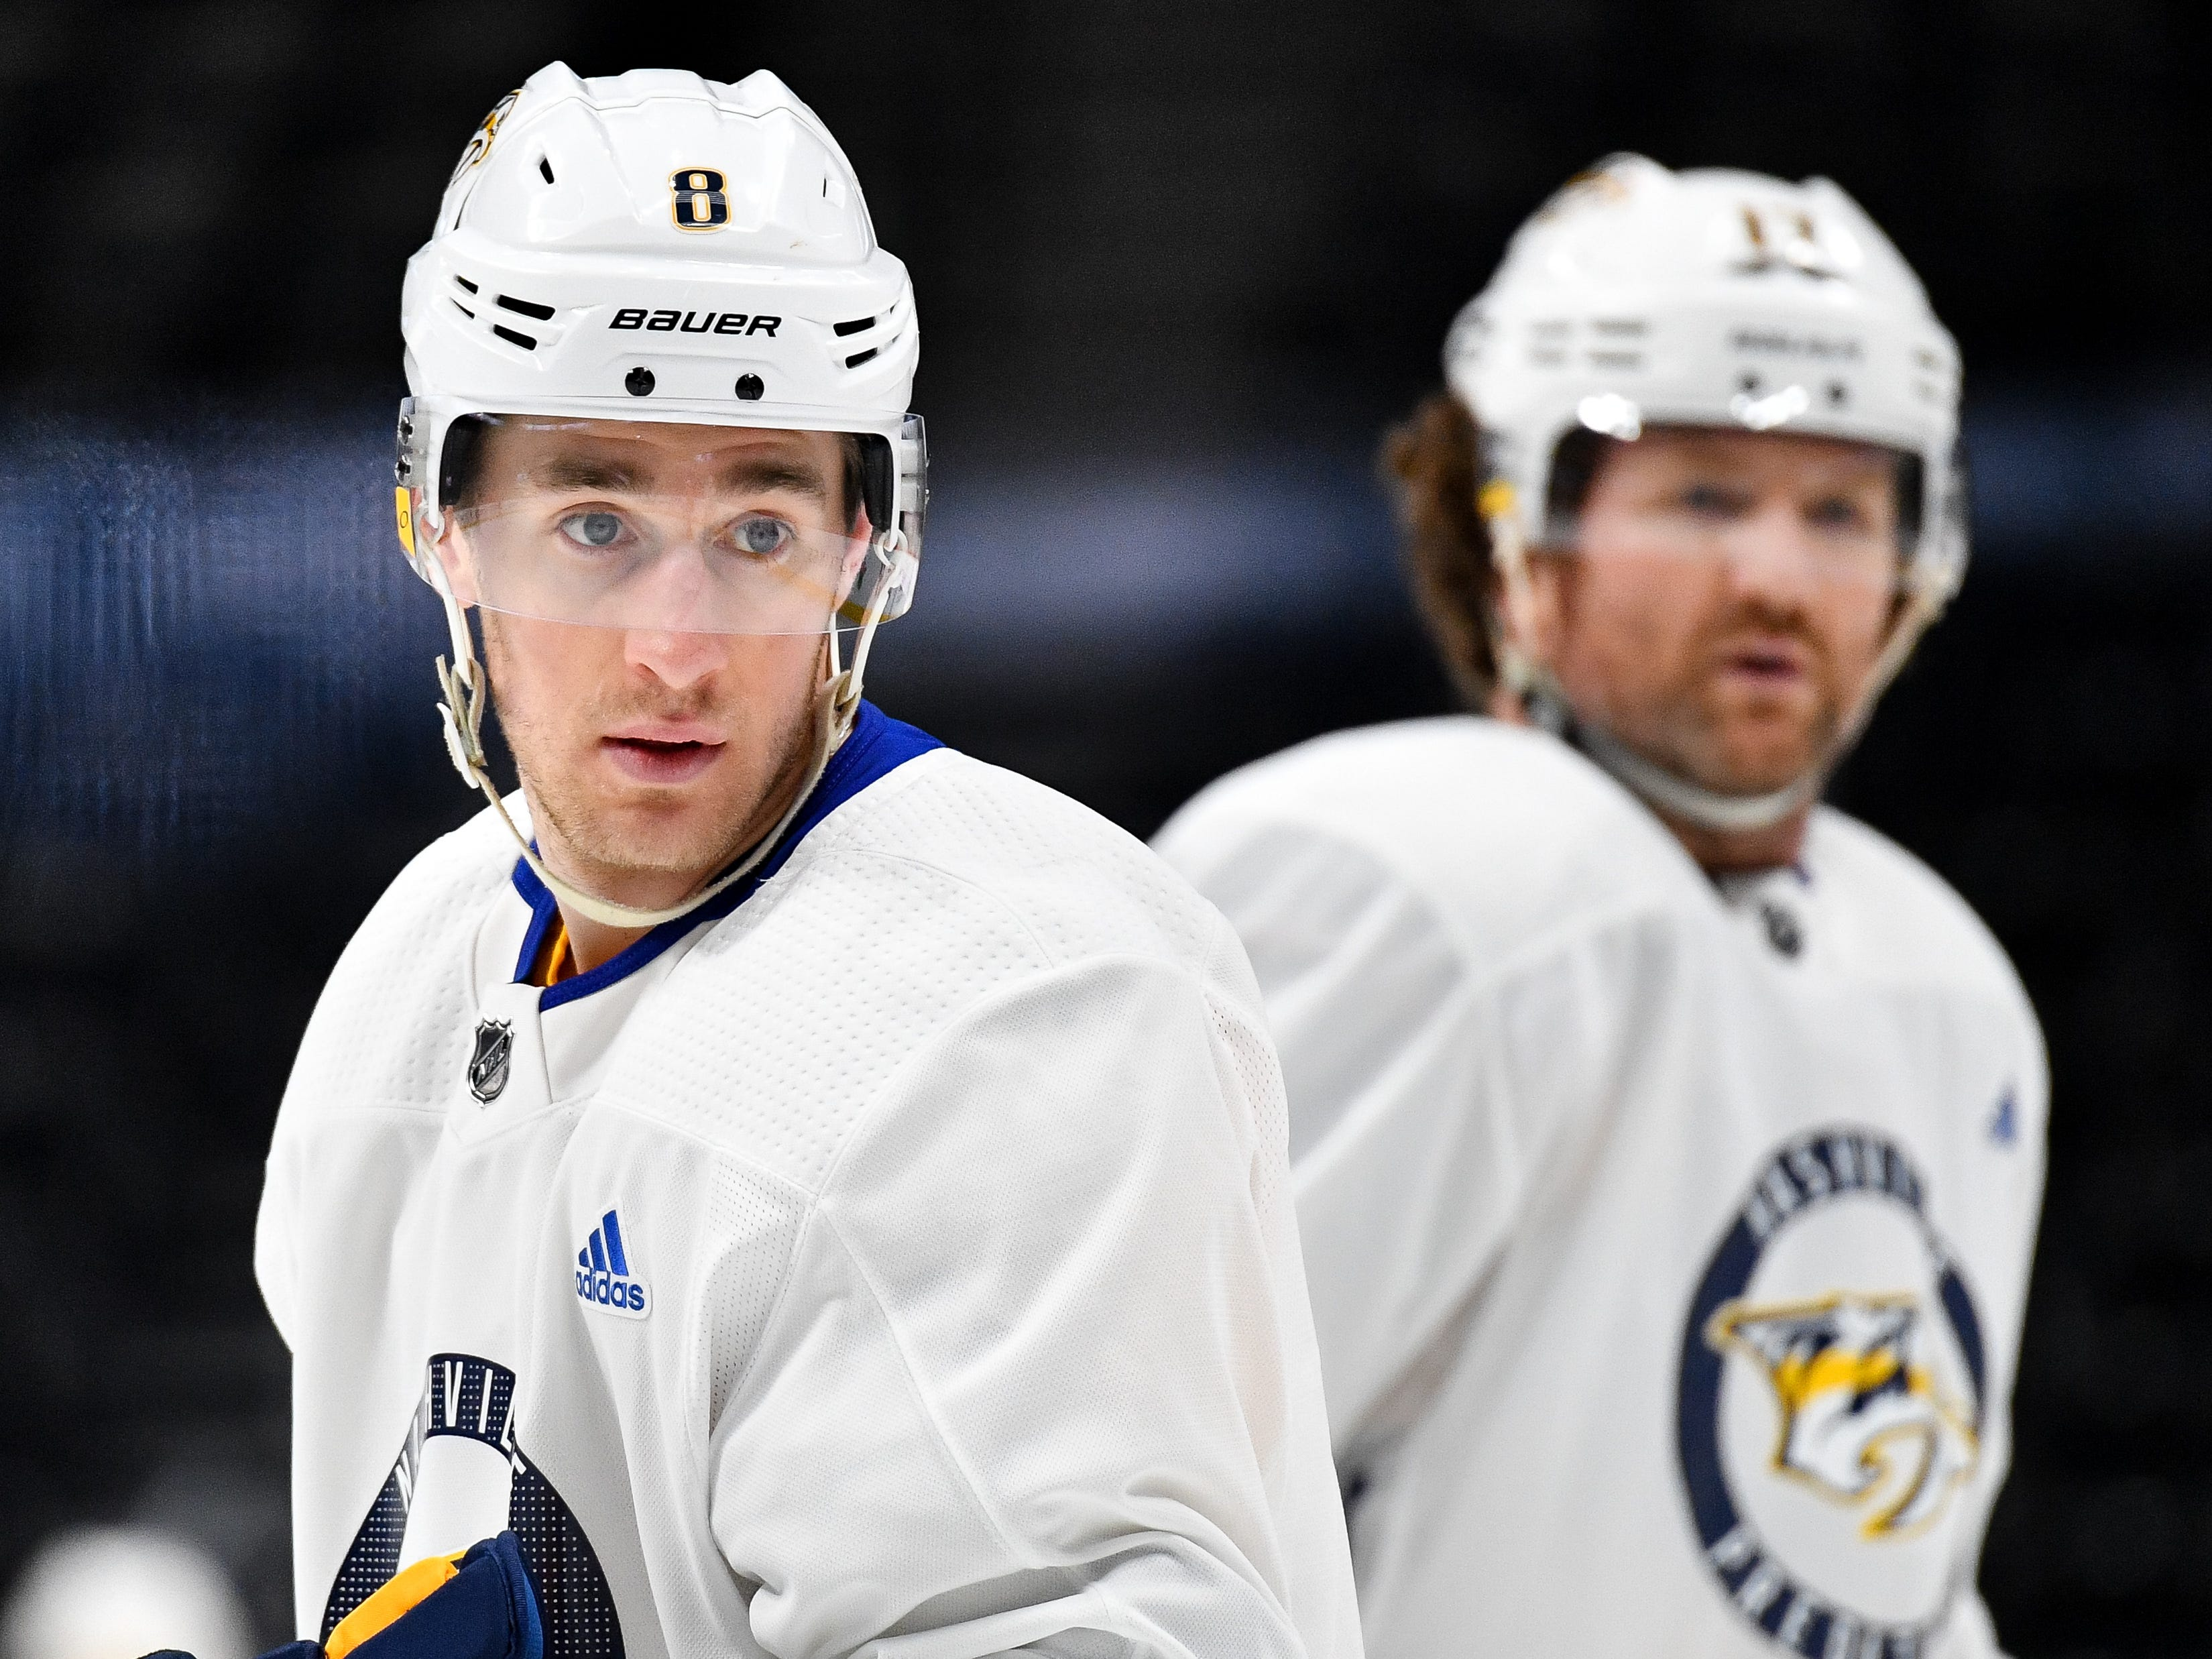 #8, Kyle Turris, Forward - Nashville Predators center Kyle Turris (8) during the morning skate at the Pepsi Center, Monday, April 16, 2018, in Denver, Colo.